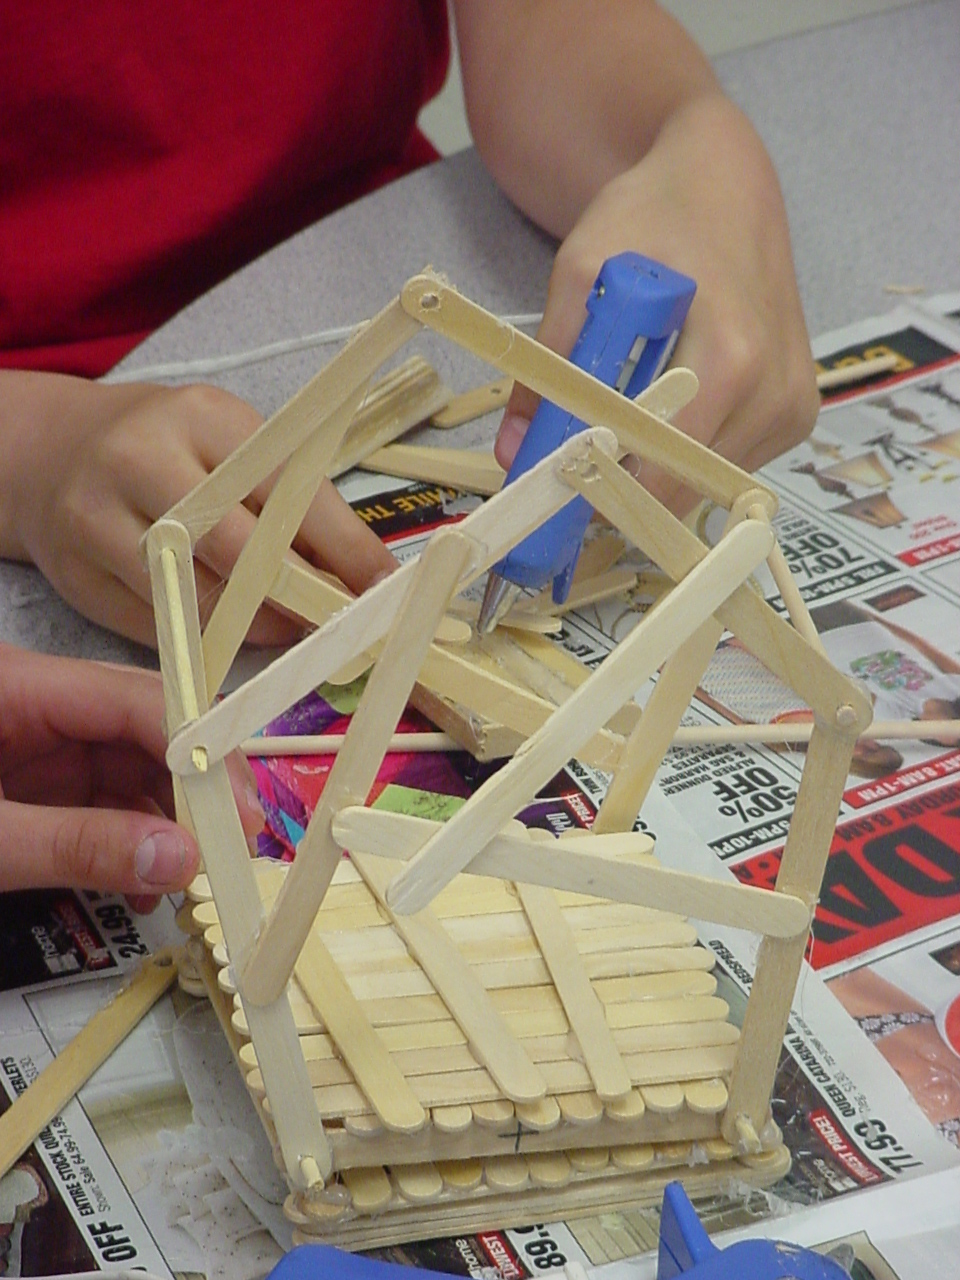 close-up of a catapult being built